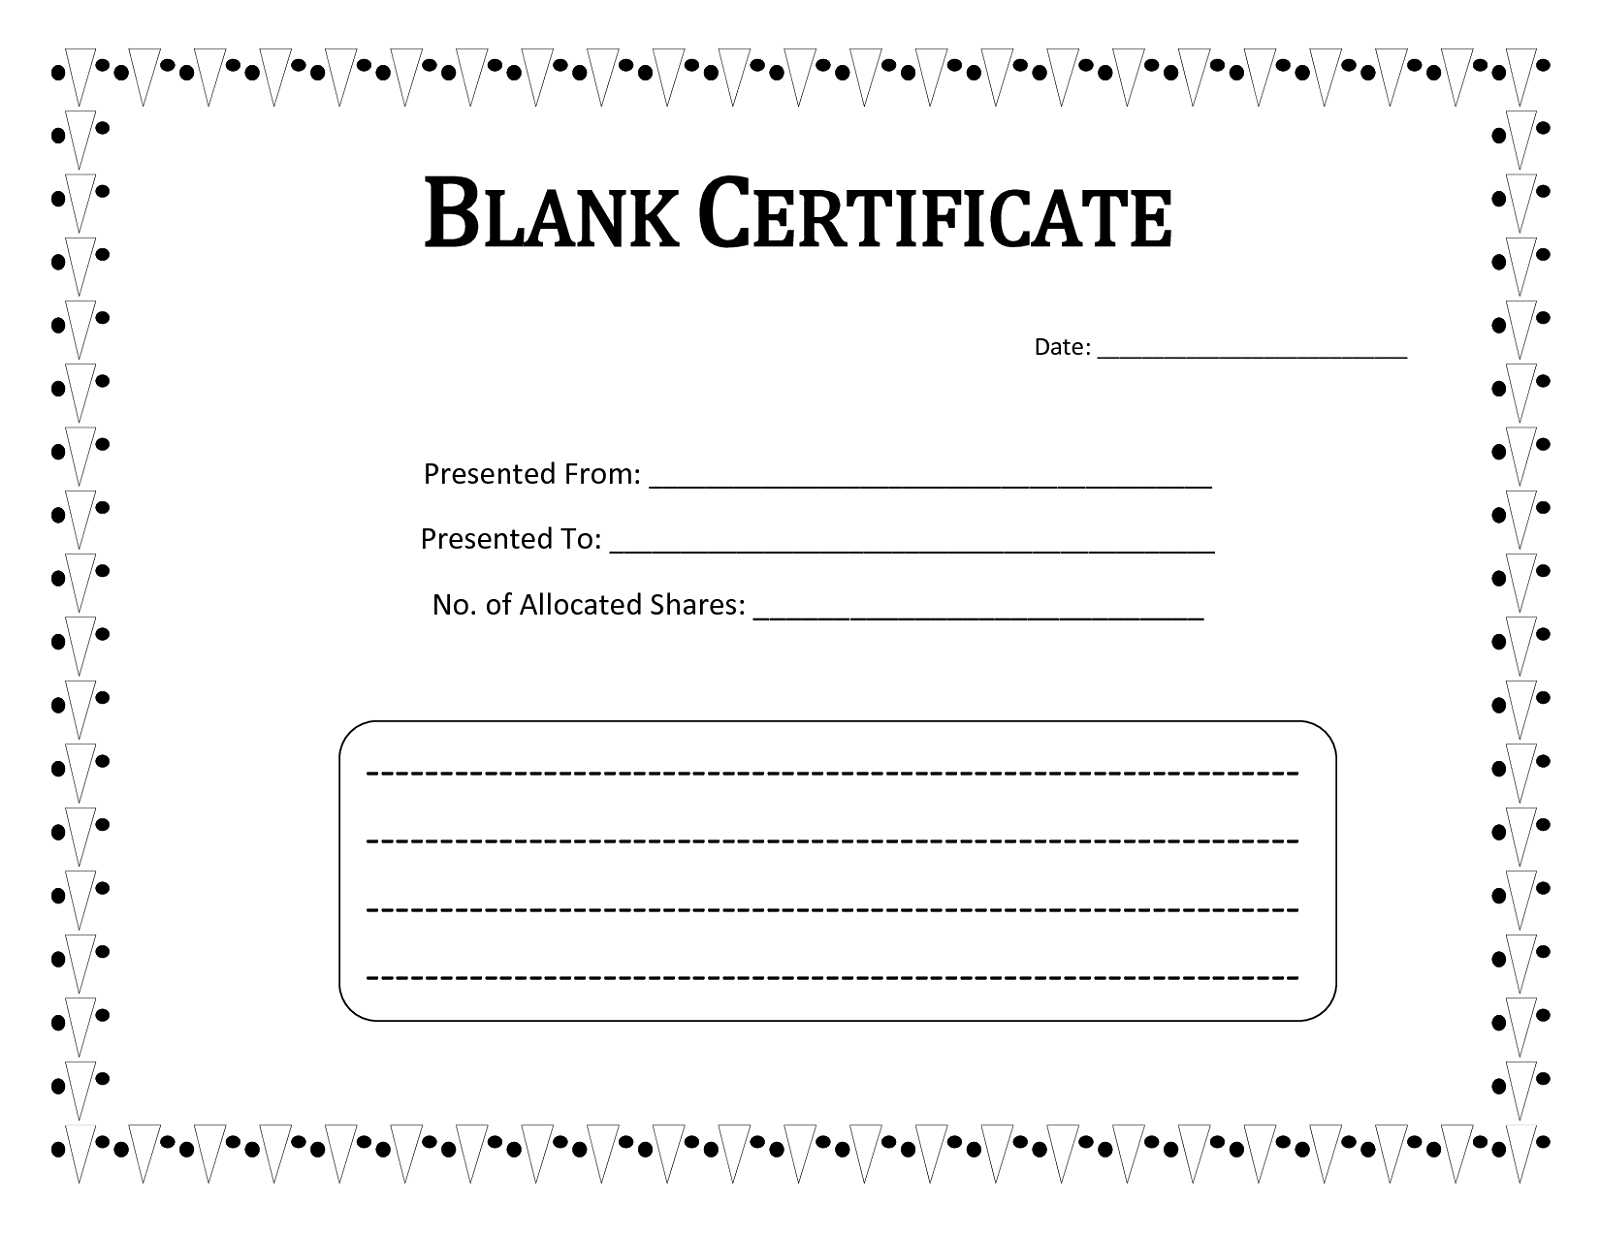 Blank certificate templates to print activity shelter blank blank certificate templates to print activity shelter yelopaper Image collections